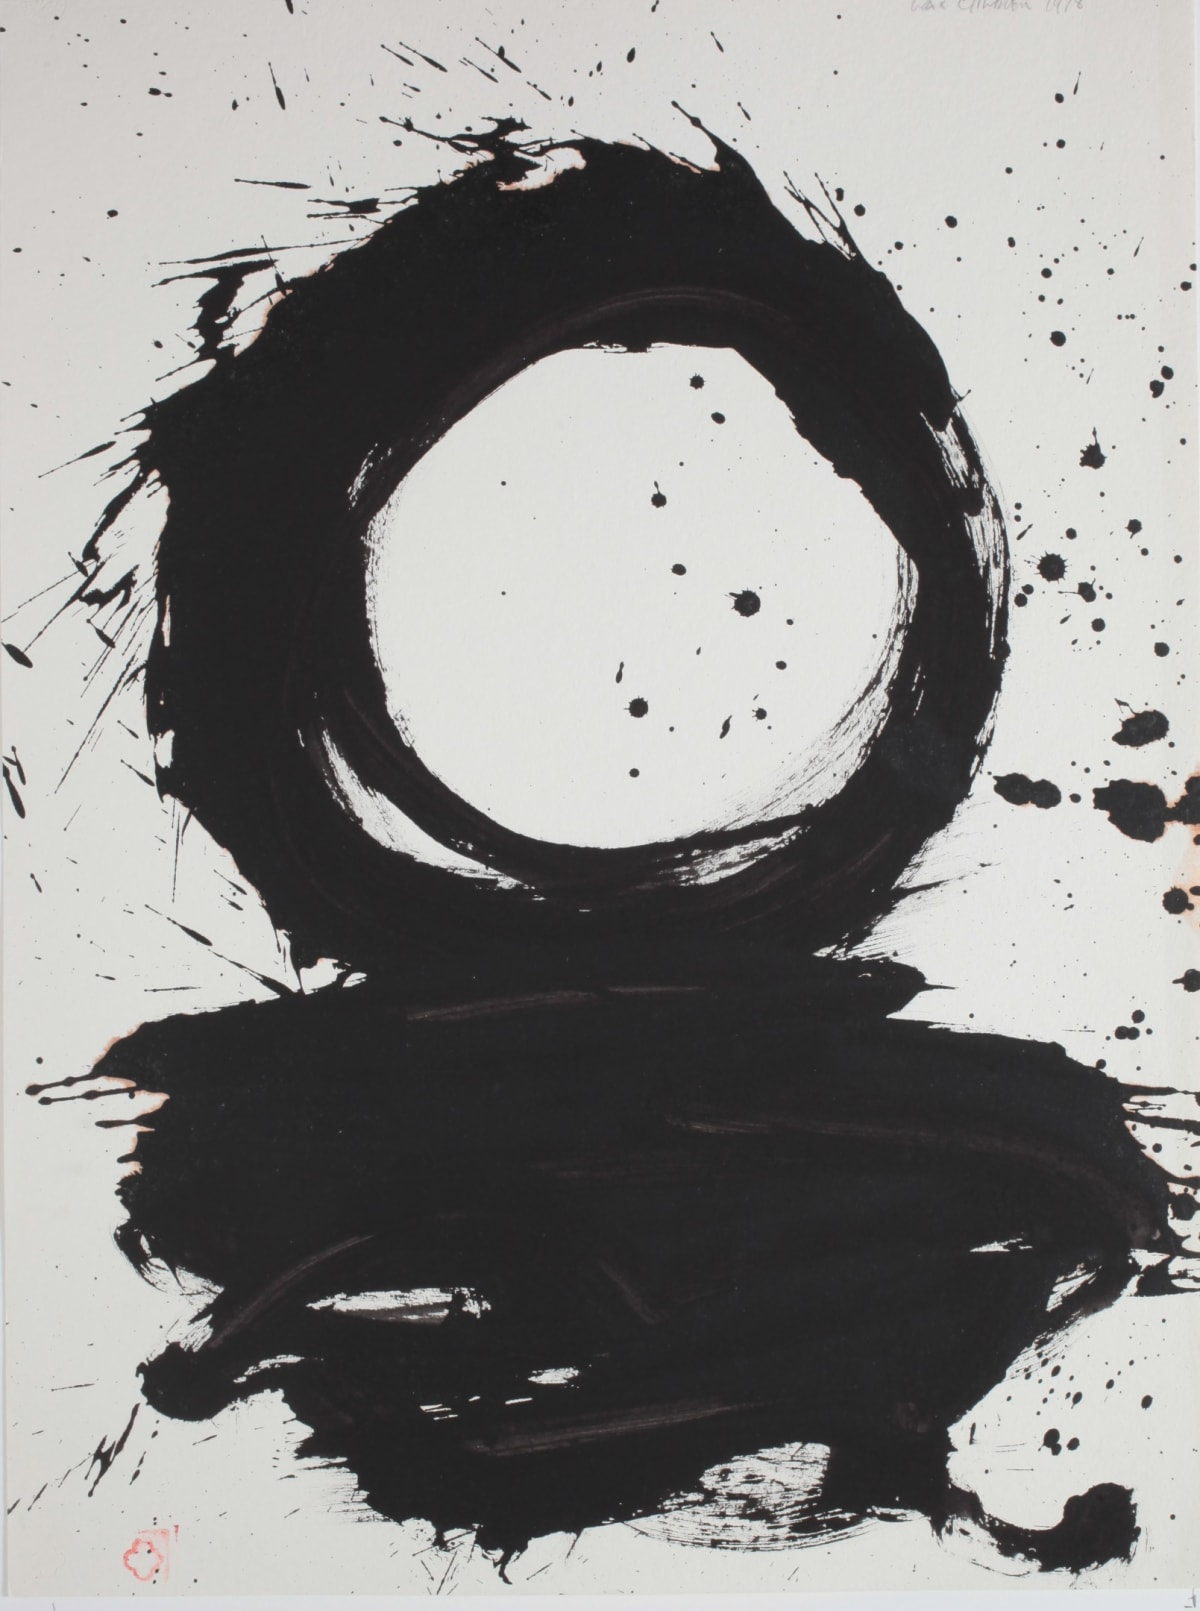 Max GIMBLETT He's Hitting at a Ball on a Fast Flowing River - for Robert Motherwell, 1978 Sumi ink on hand made paper 30 x 25 in 76.2 x 63.5 cm